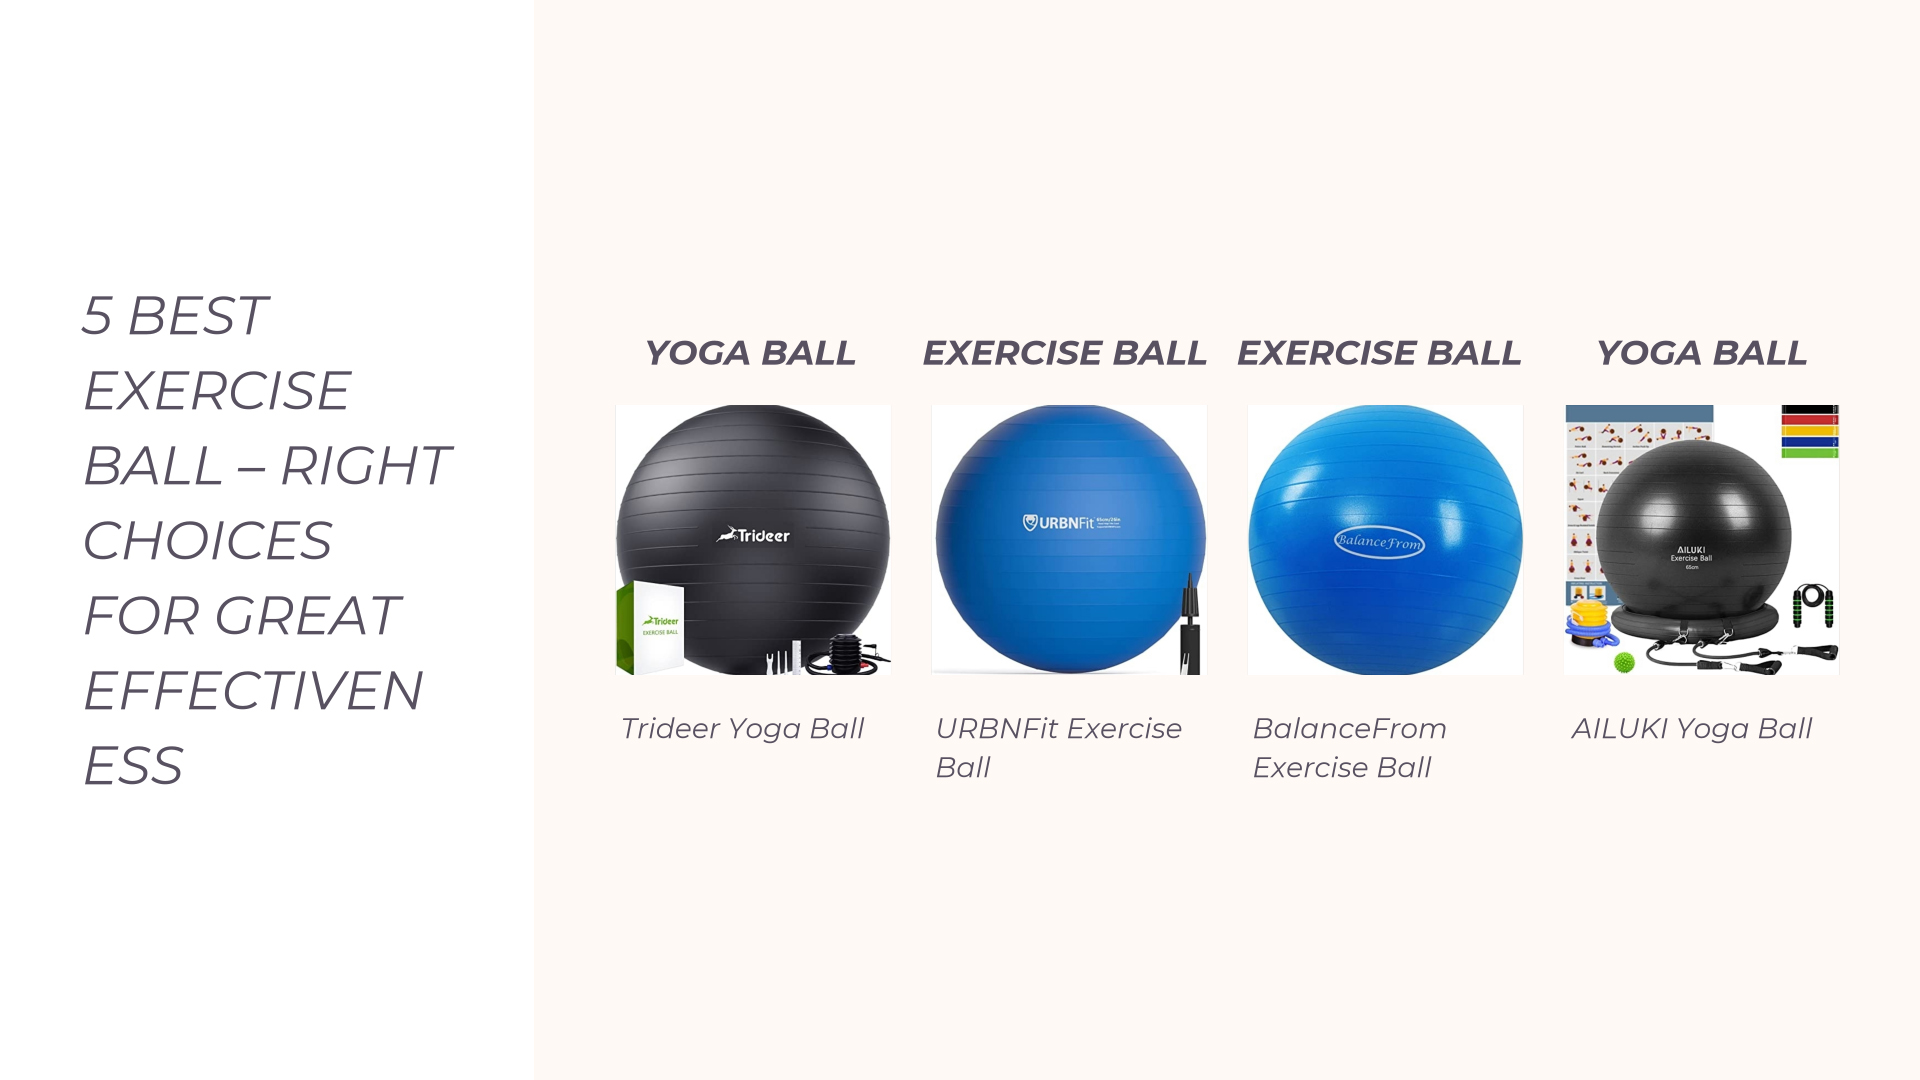 5 Best Exercise Ball – Right Choices for Great Effectiveness